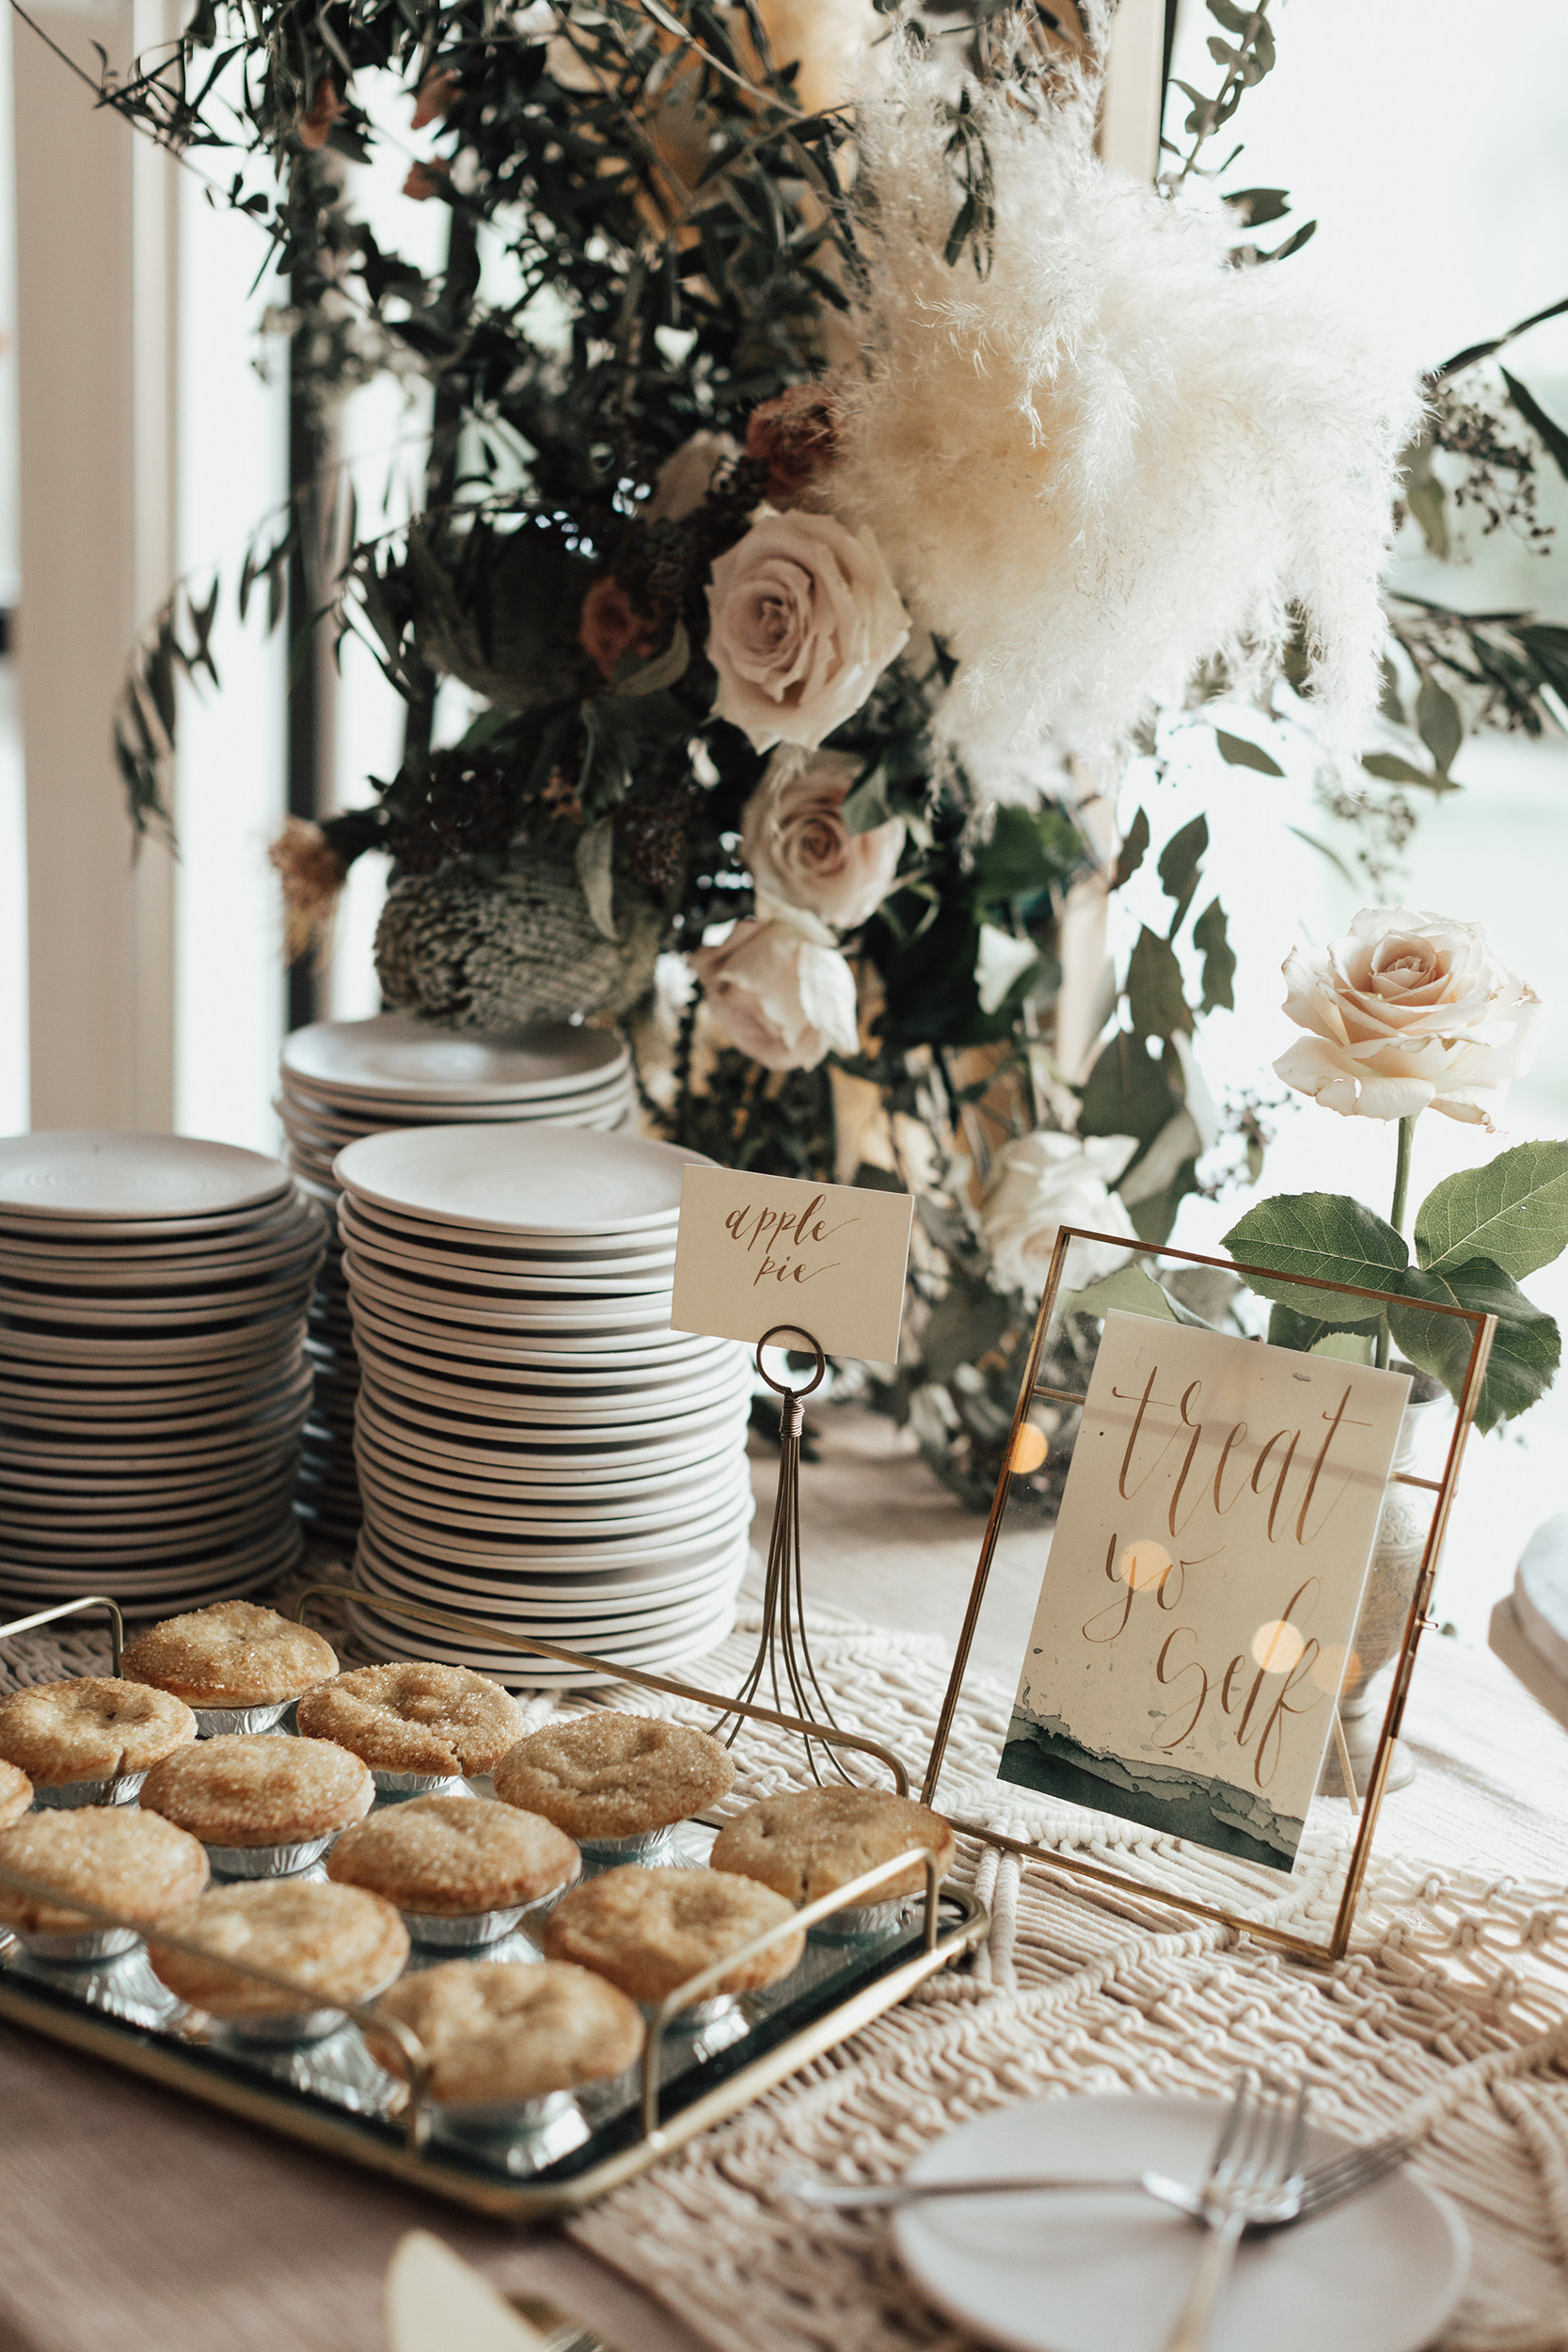 toby+brenna   JUNE 2018  Watercolor place cards and table signage.  CALLIGRAPHY: SAMI SHIROMA  PHOTOGRAPHER:  BROGEN JESSUP   VENUE:  ACE HOTEL & SWIM CLUB